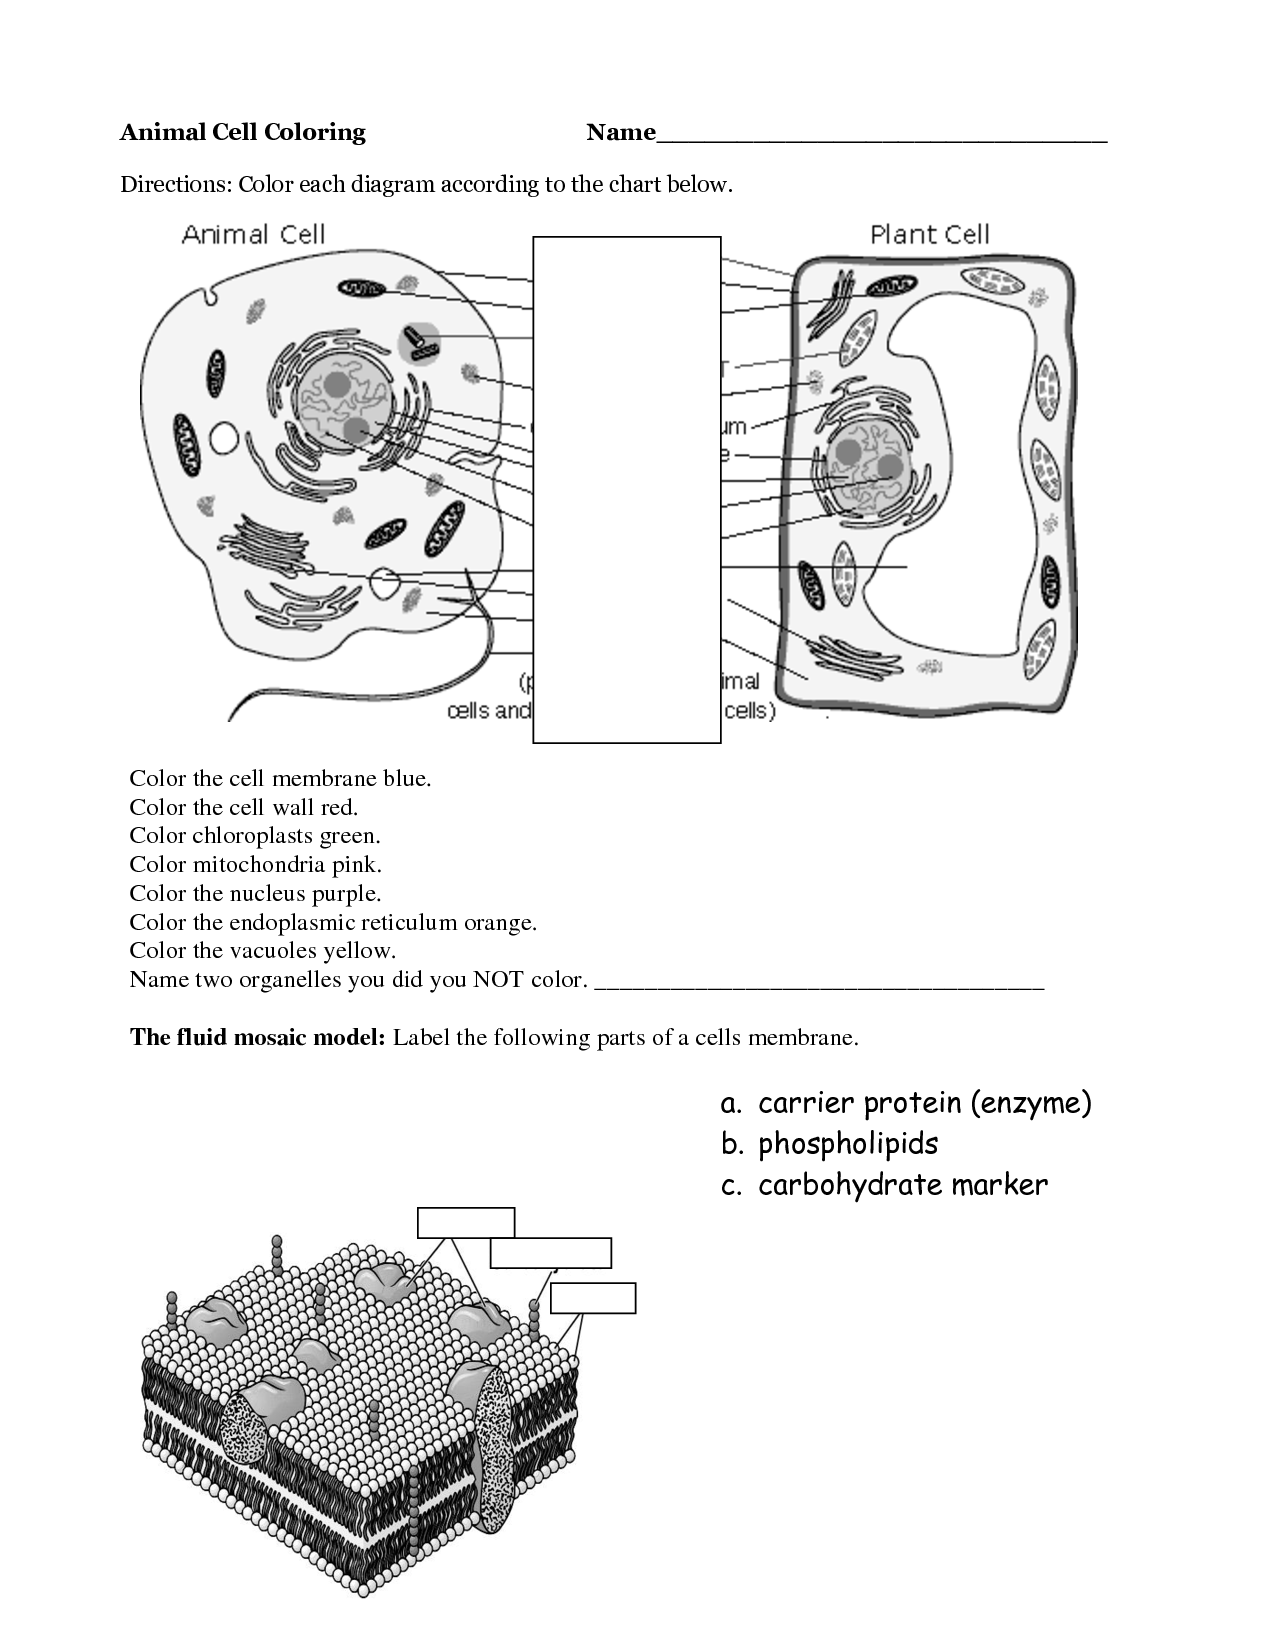 Plant And Animal Cell Diagram Worksheet Answers